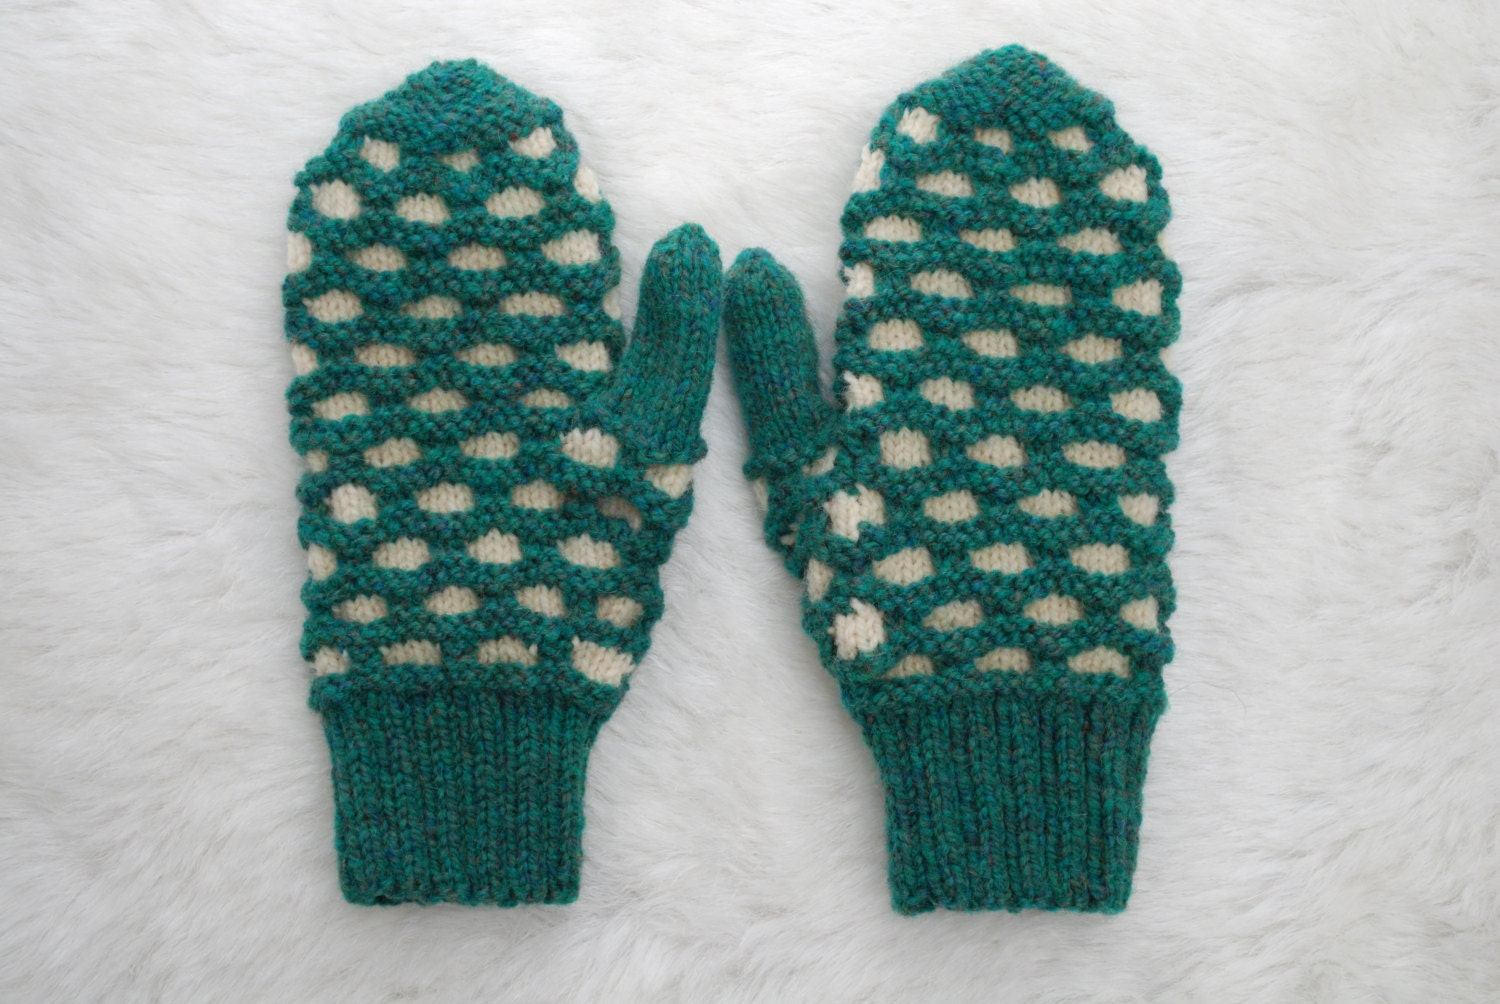 Double Knit Mittens Free Pattern : Traditional Newfoundland Honeycomb Double Knit Mittens Heather